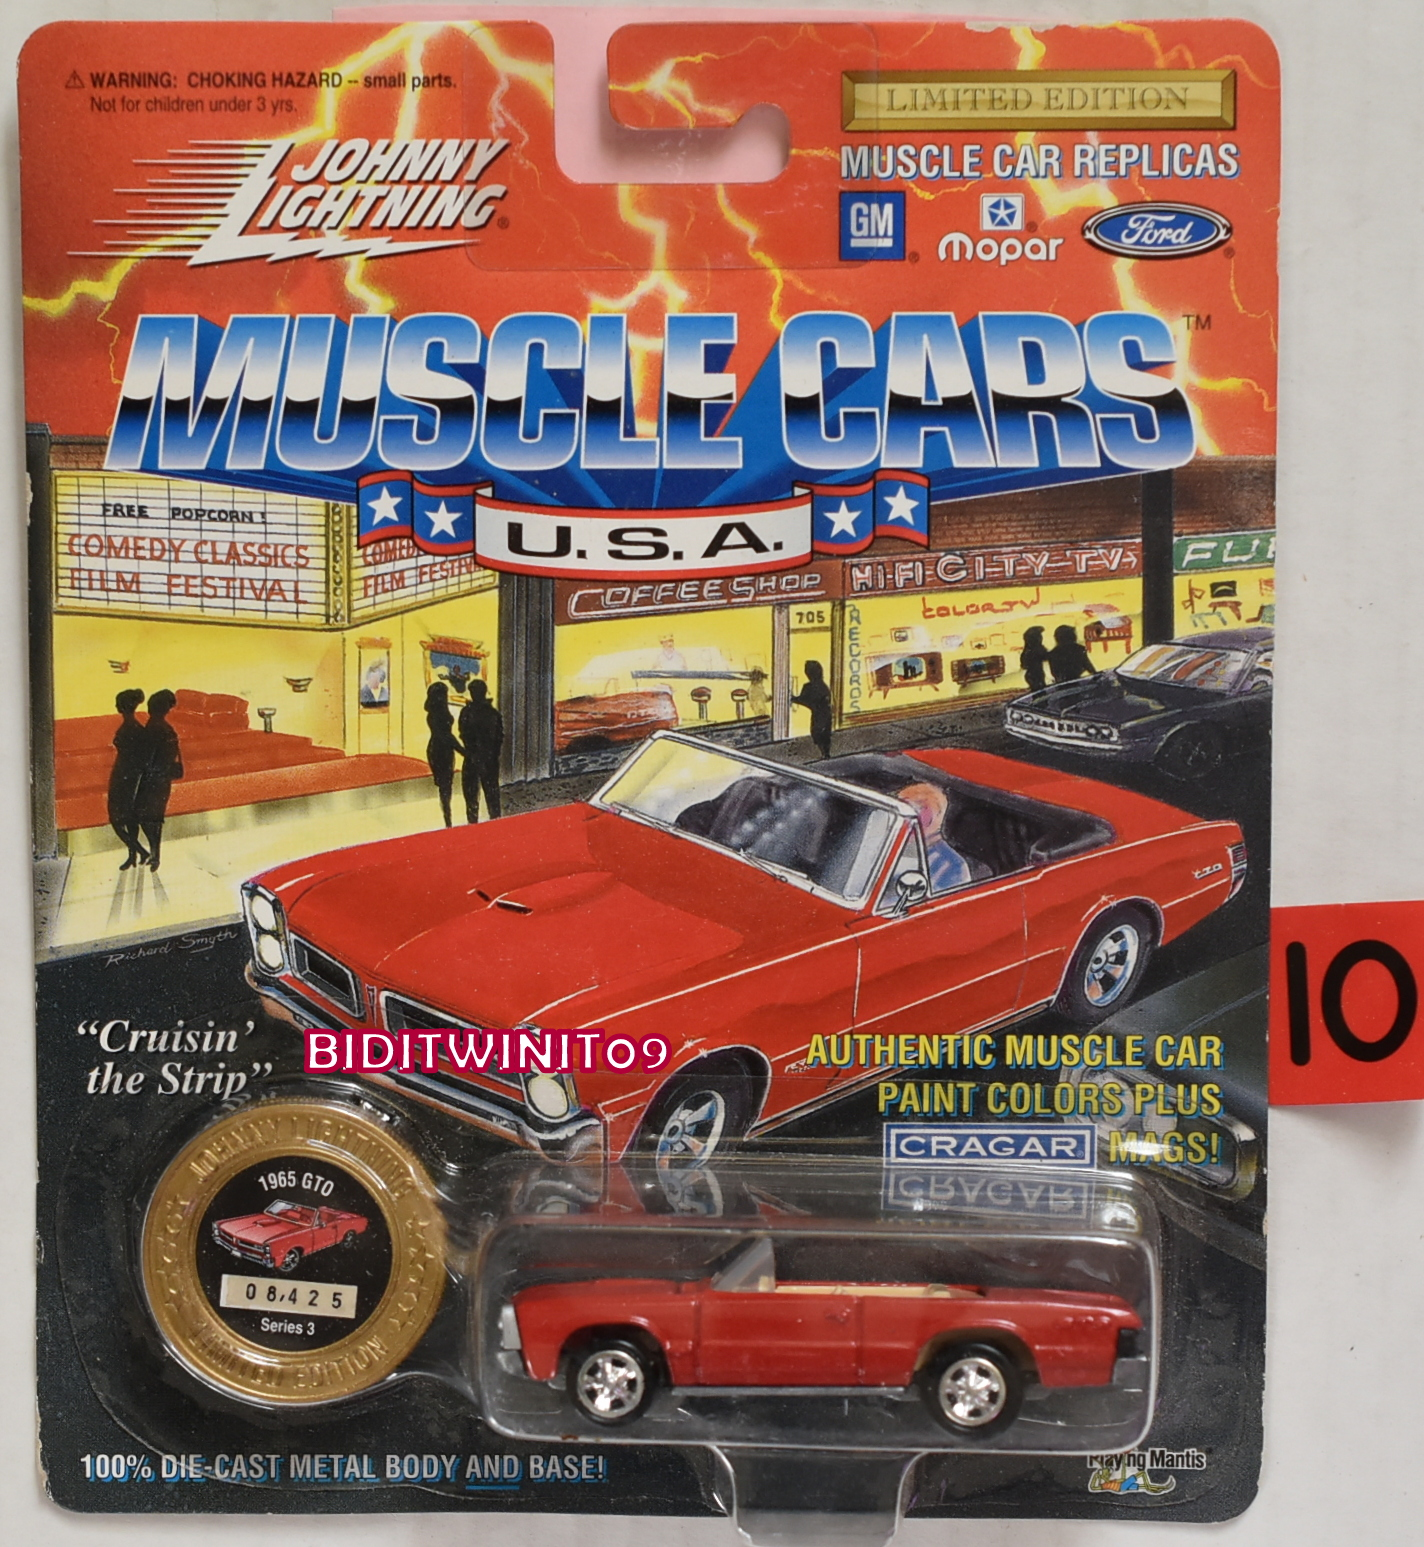 1994 JOHNNY LIGHTNING MUSCLE CARS 1965 GTO SERIES 3 RED